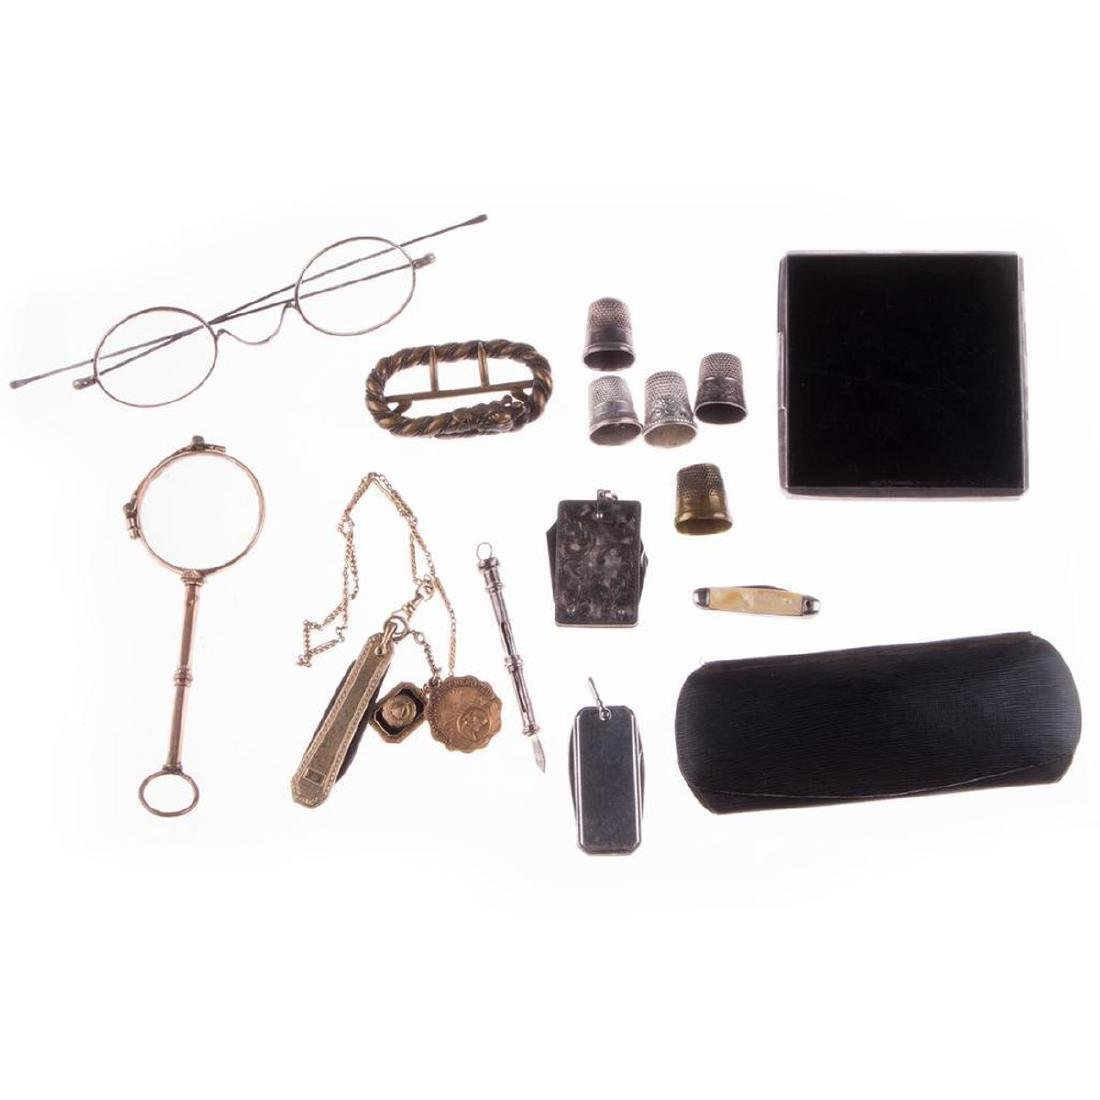 Collection of silver, gold-filled objects and accessori